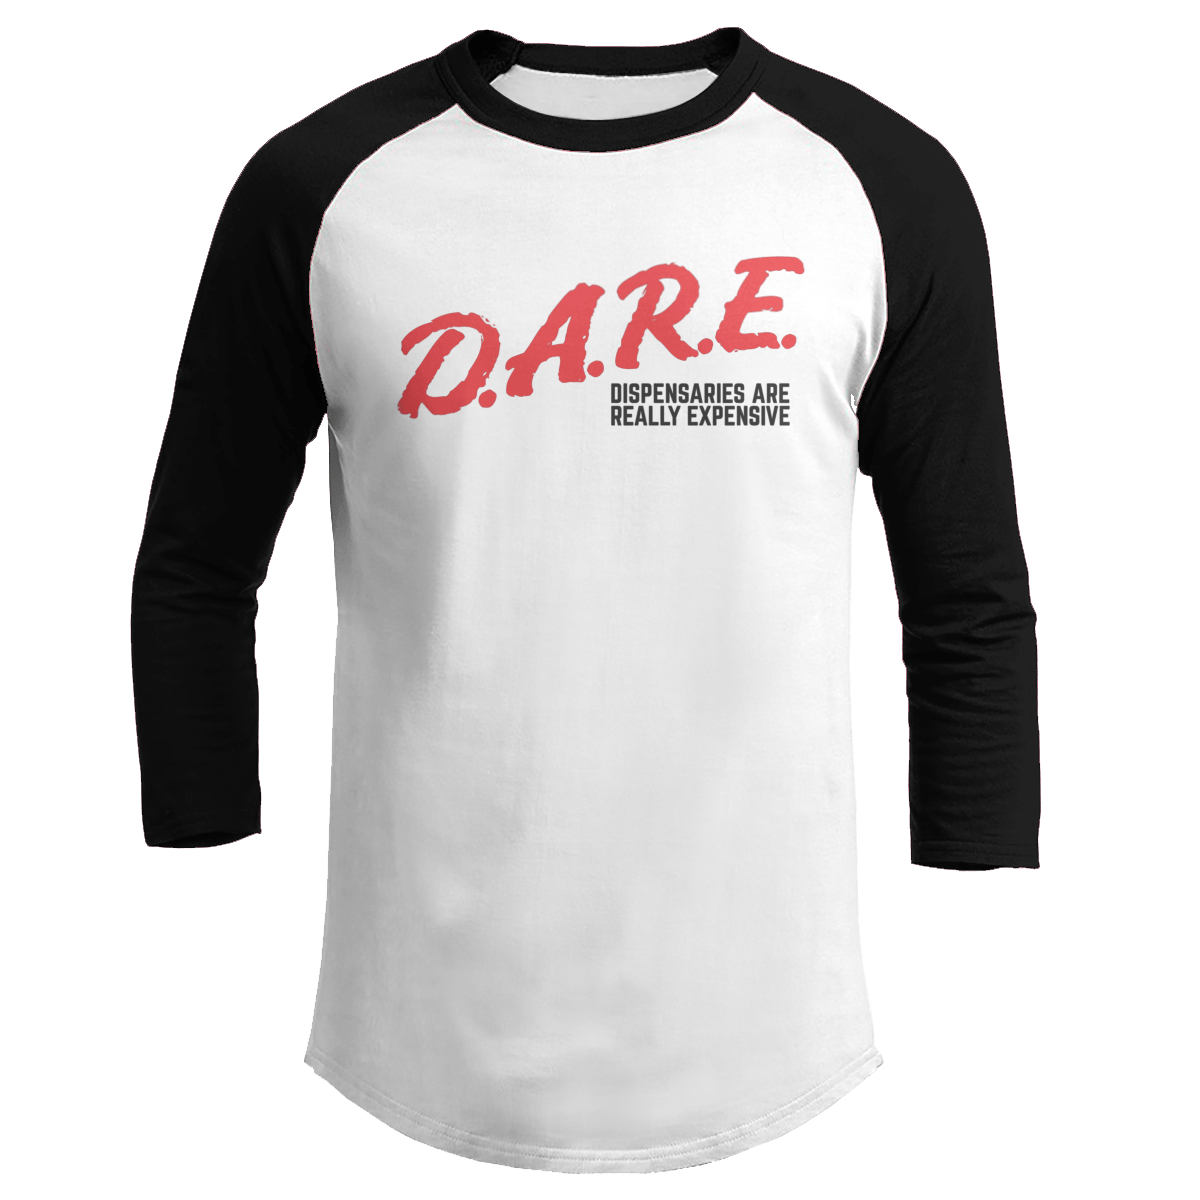 Custom D.A.R.E shirt dispensaries are really expensive available in Various colors and styles